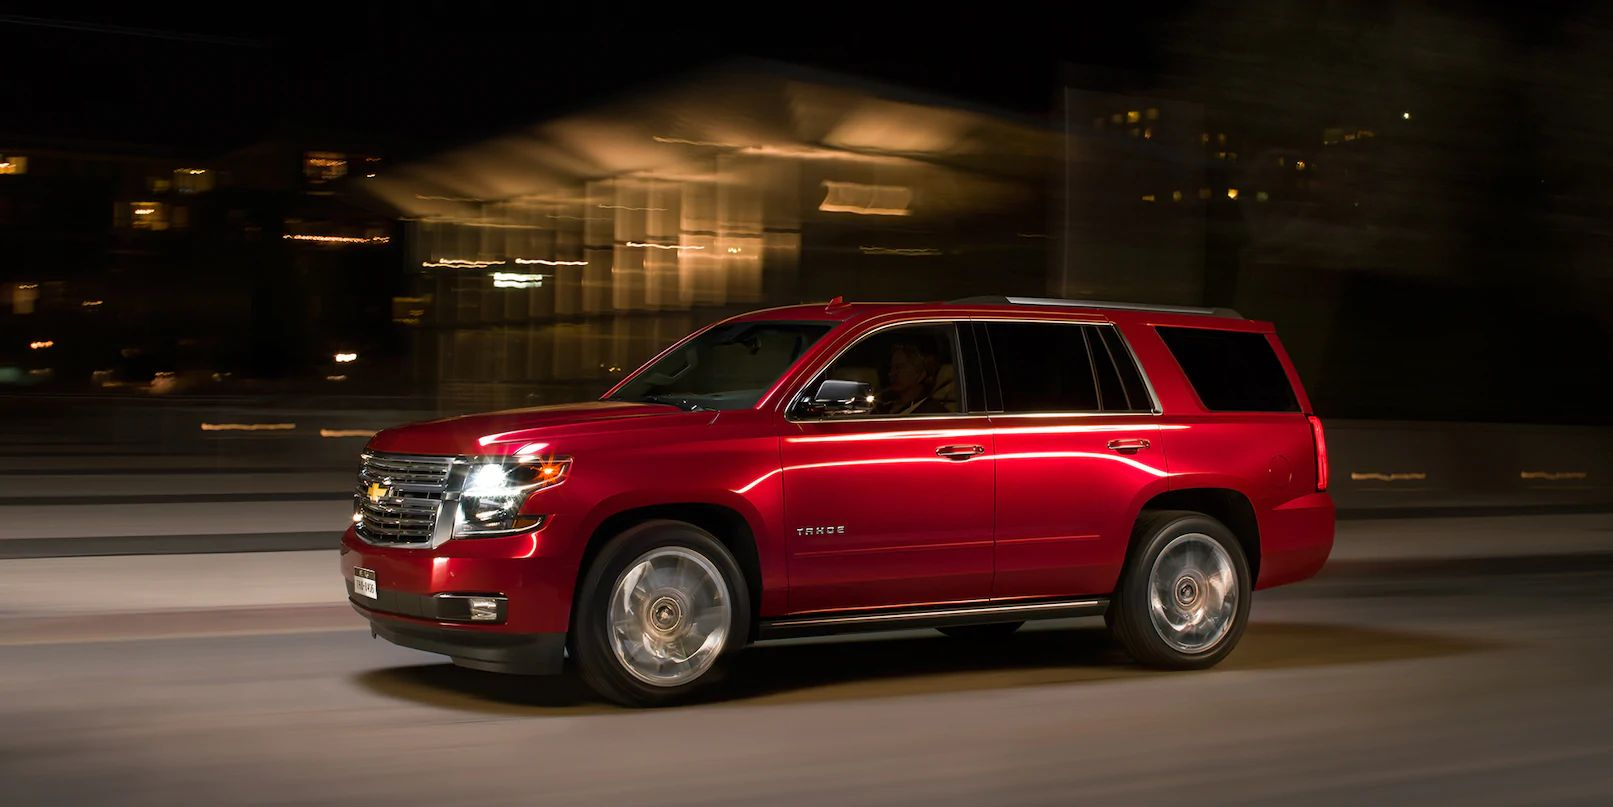 2019 Tahoe Full-Size SUV Exterior Photo: side profile